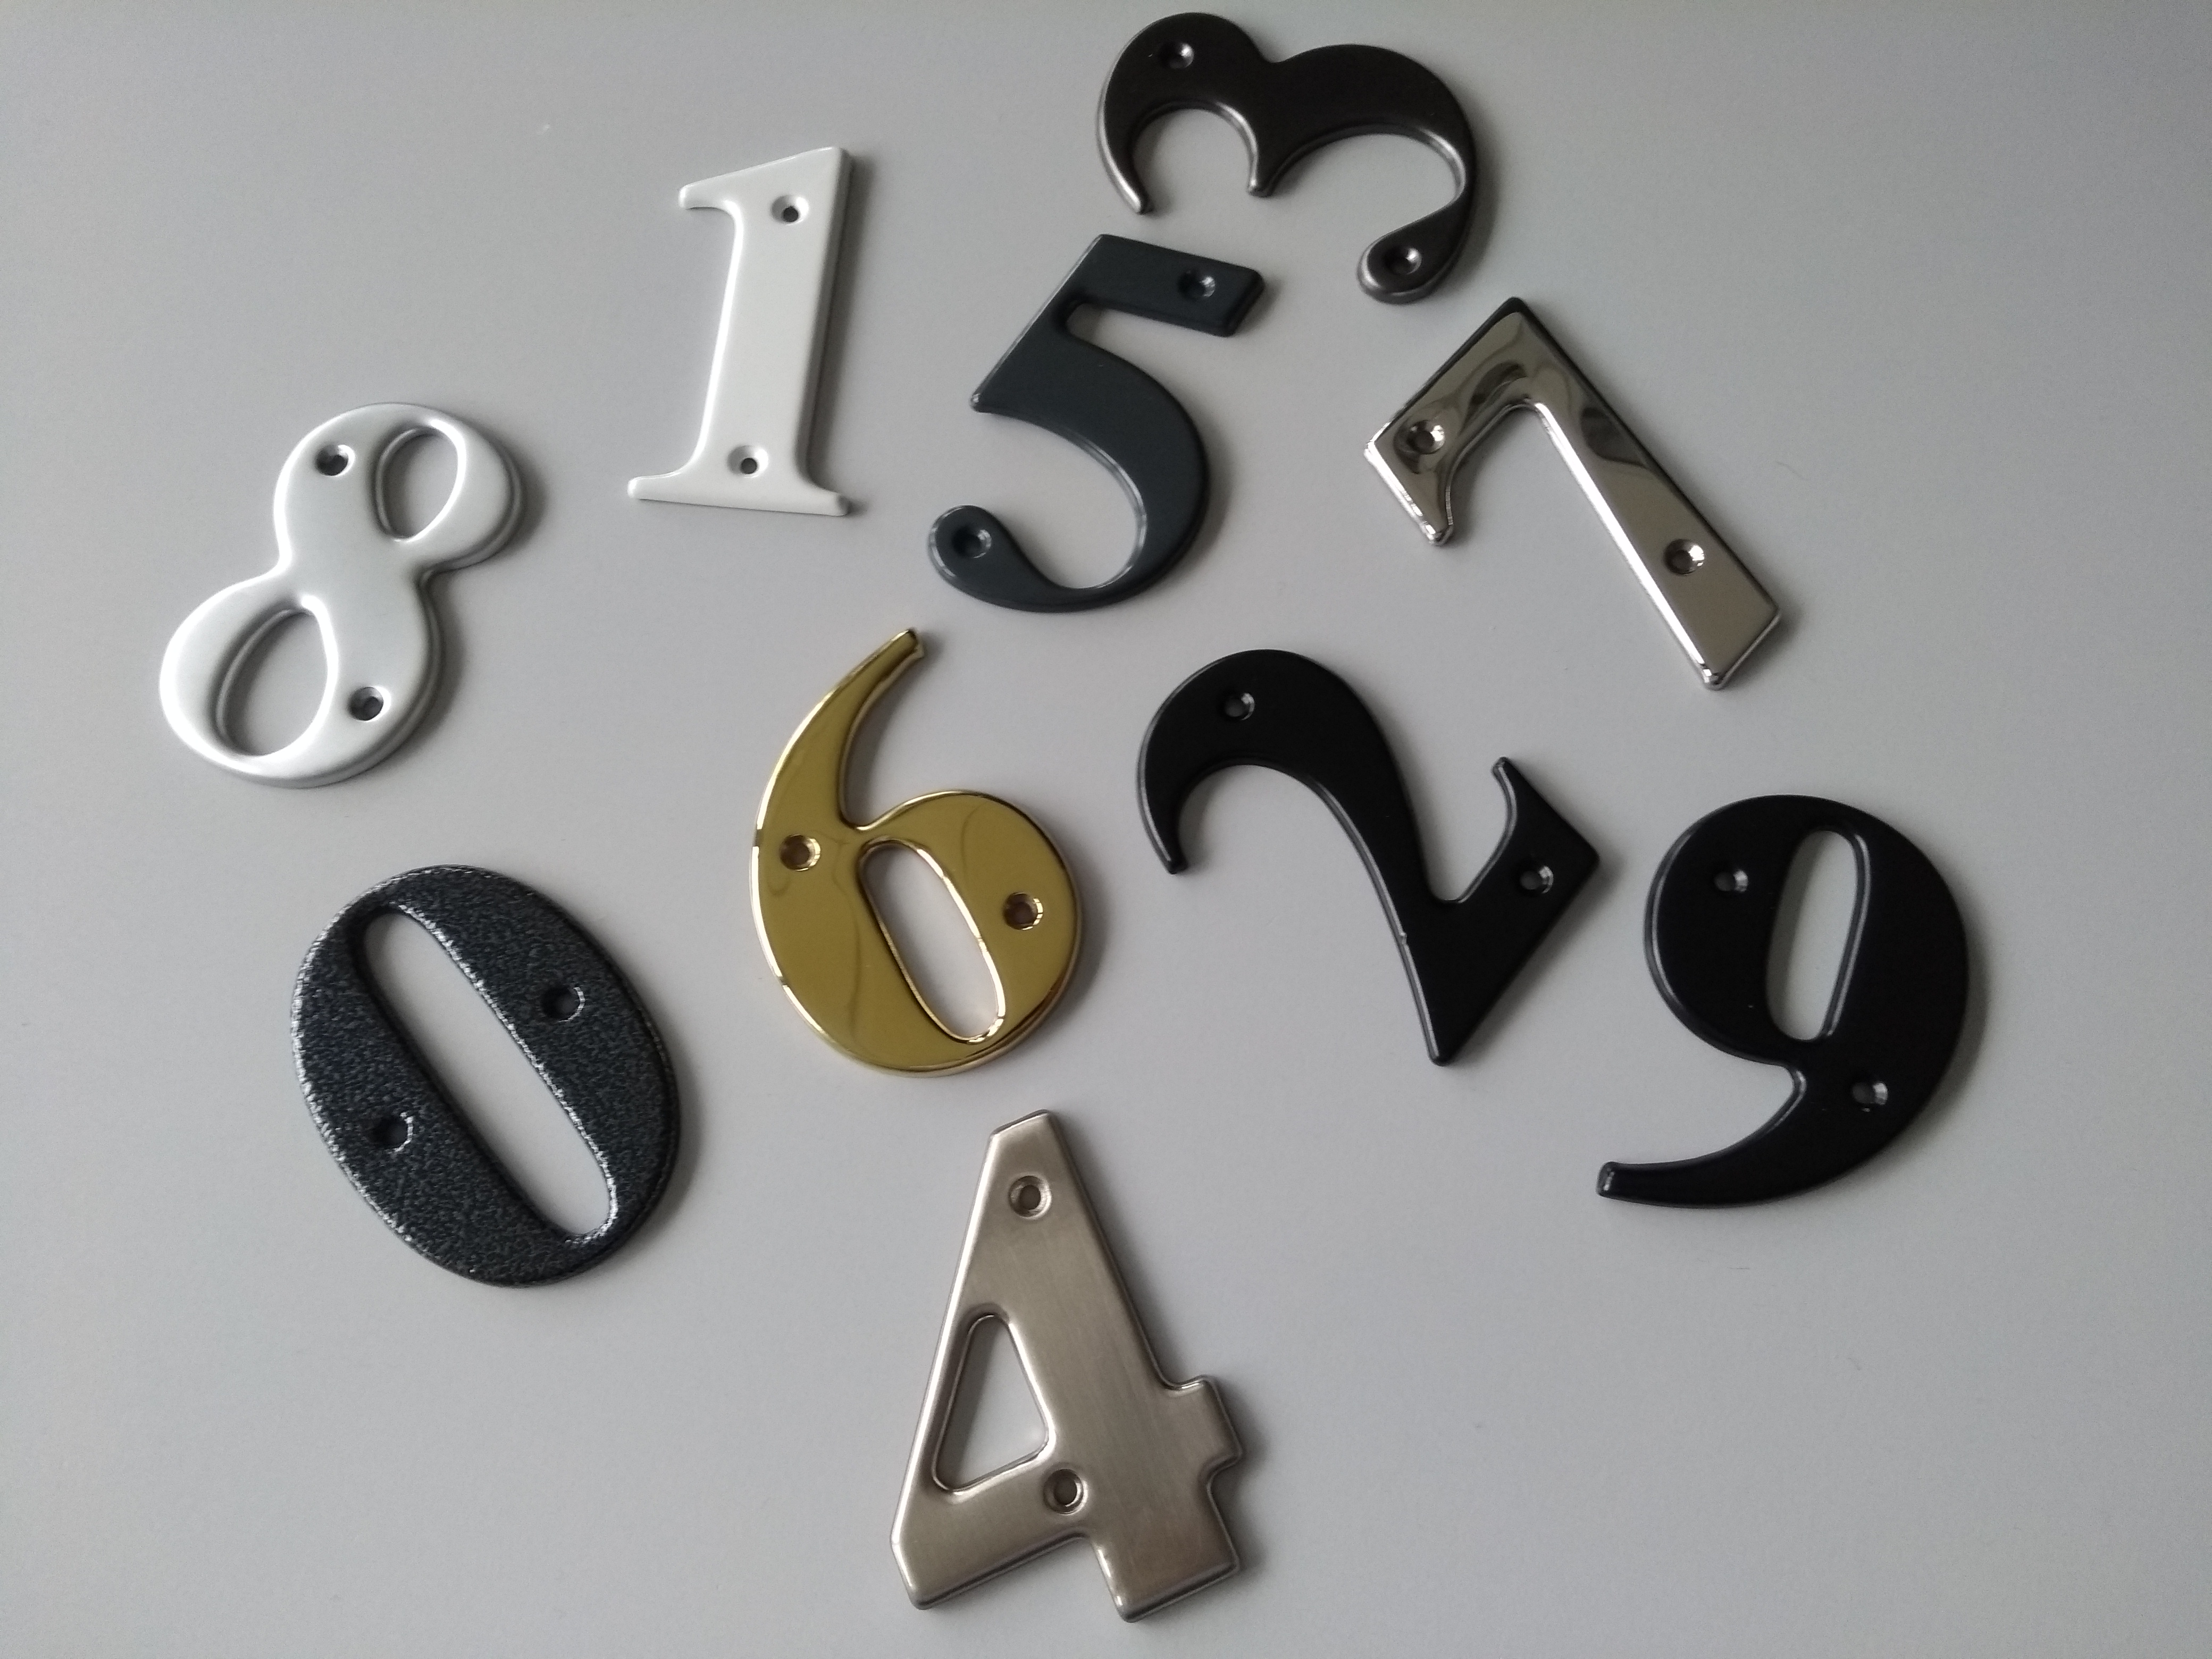 Vbh Expands Greenteq Range With New Numerals And Letters